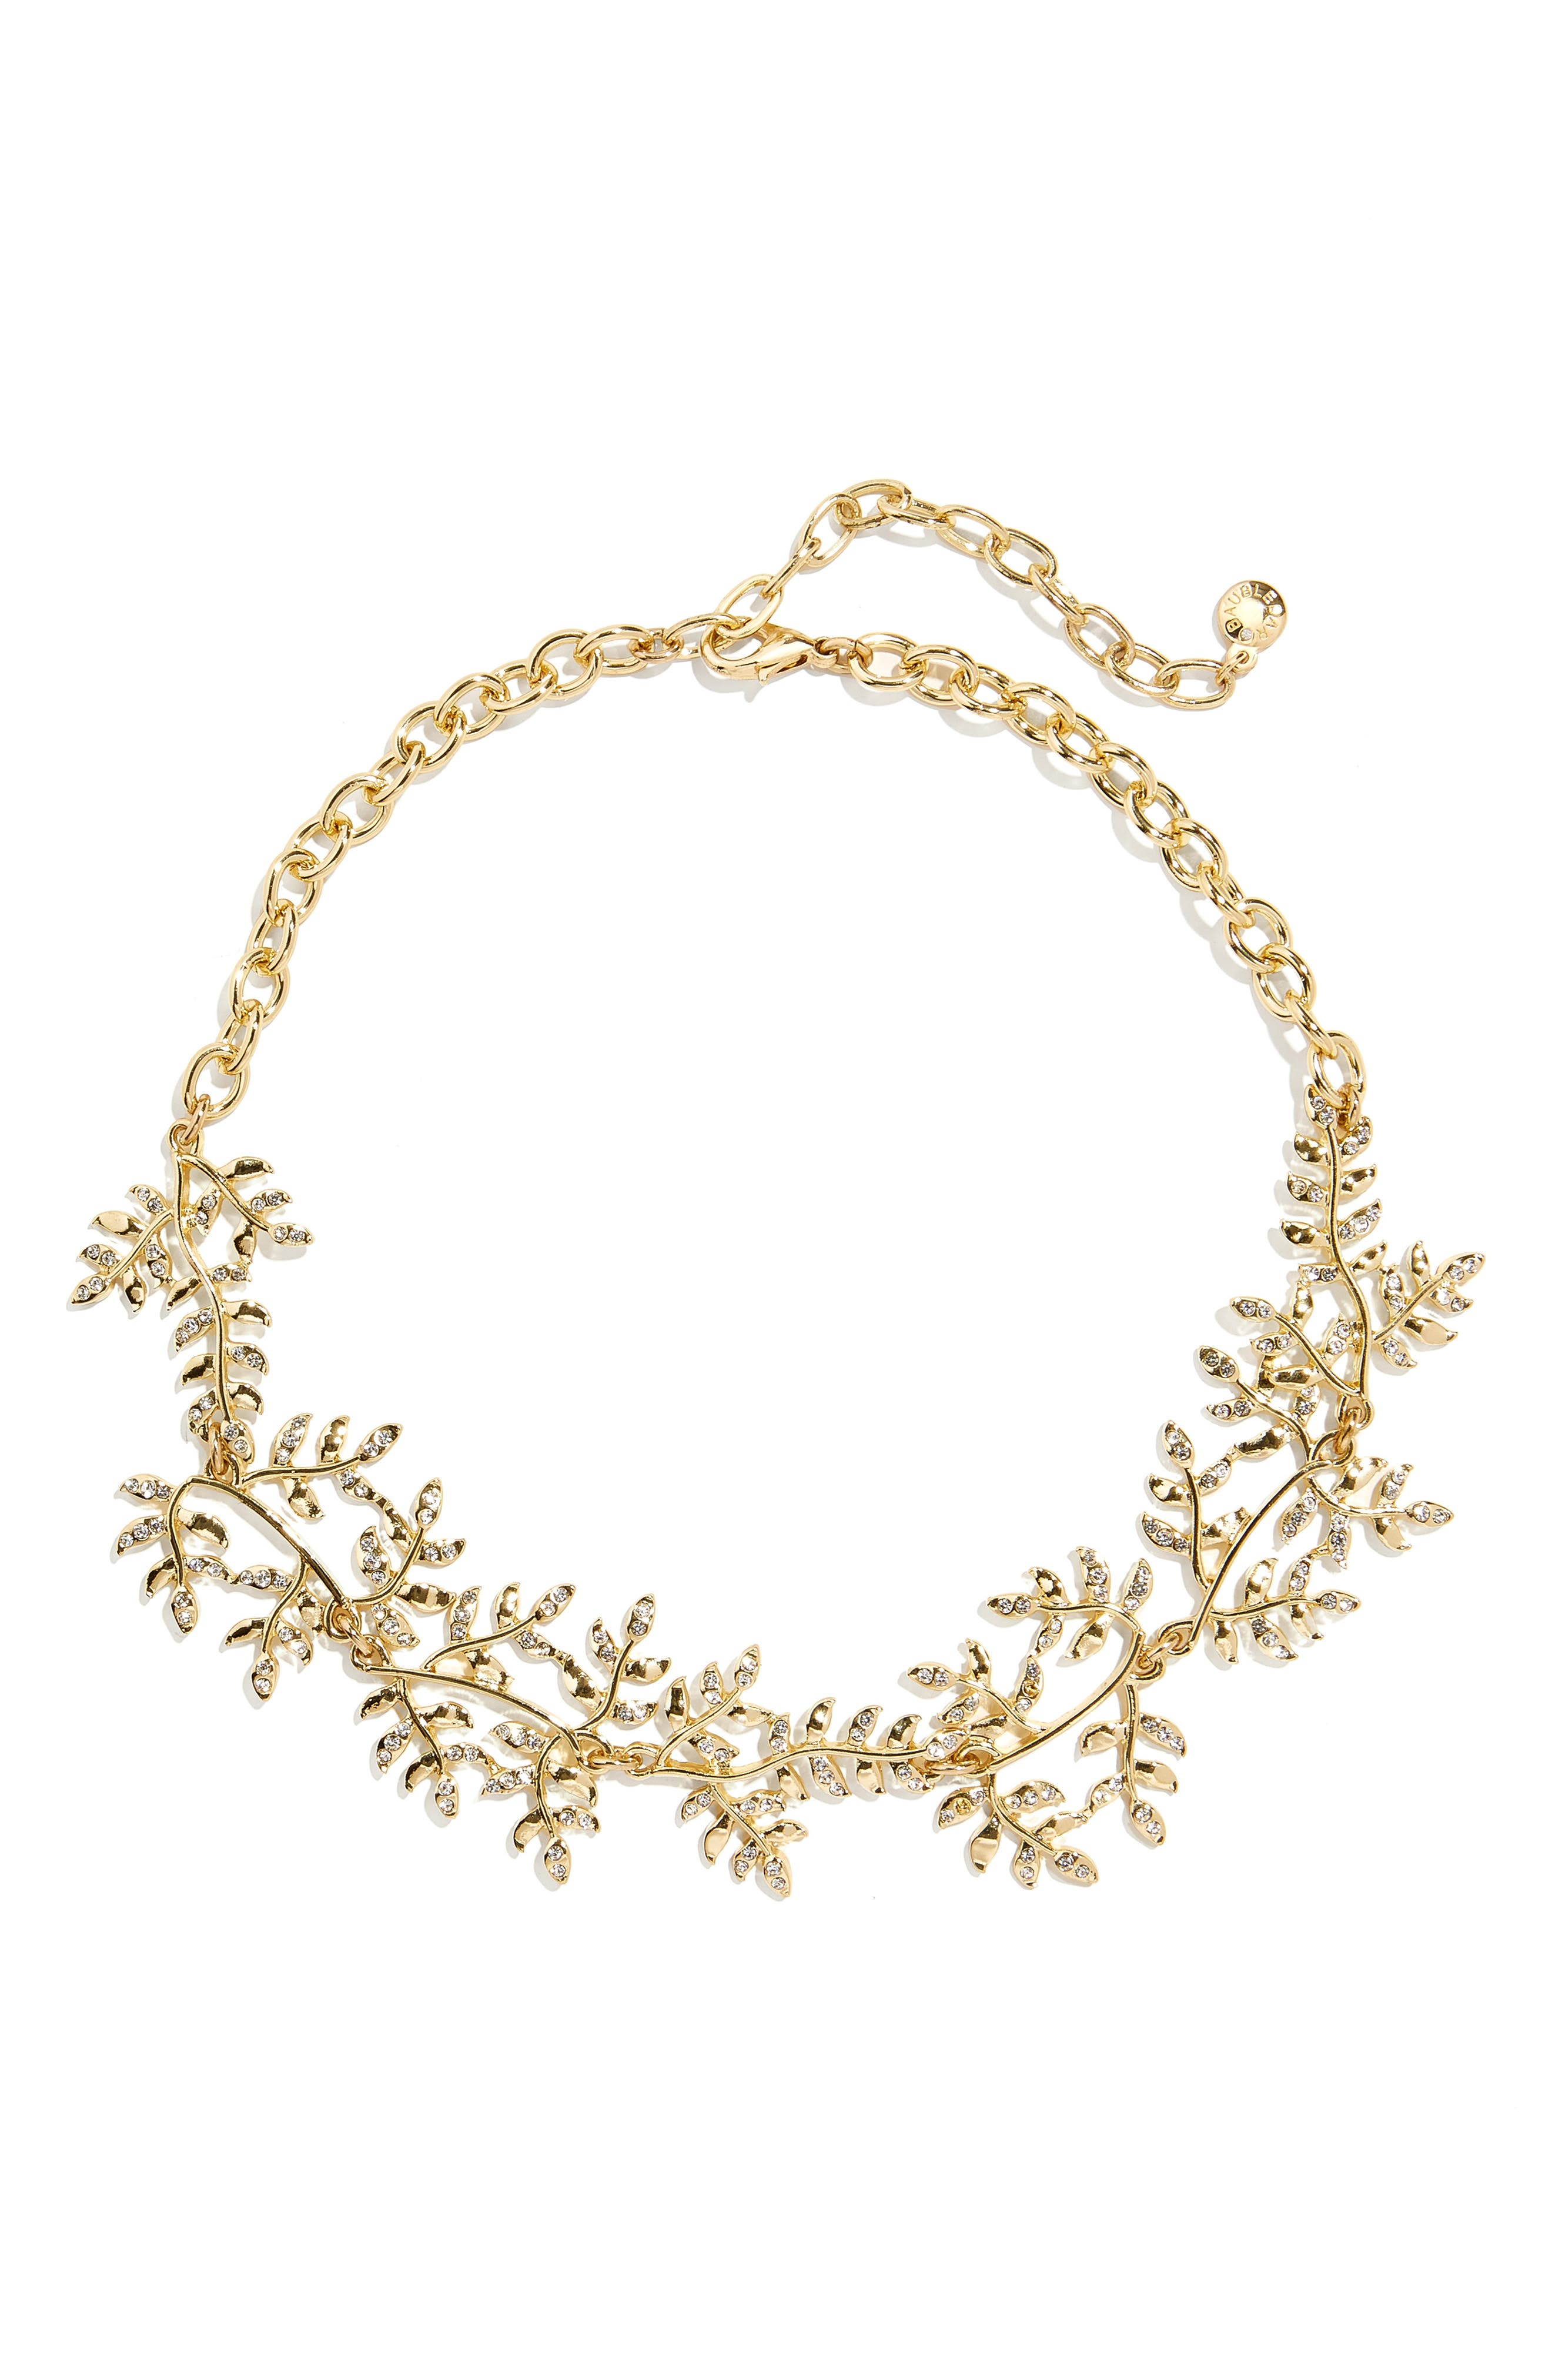 BAUBLEBAR, Lilith Collar Necklace, Main thumbnail 1, color, 710